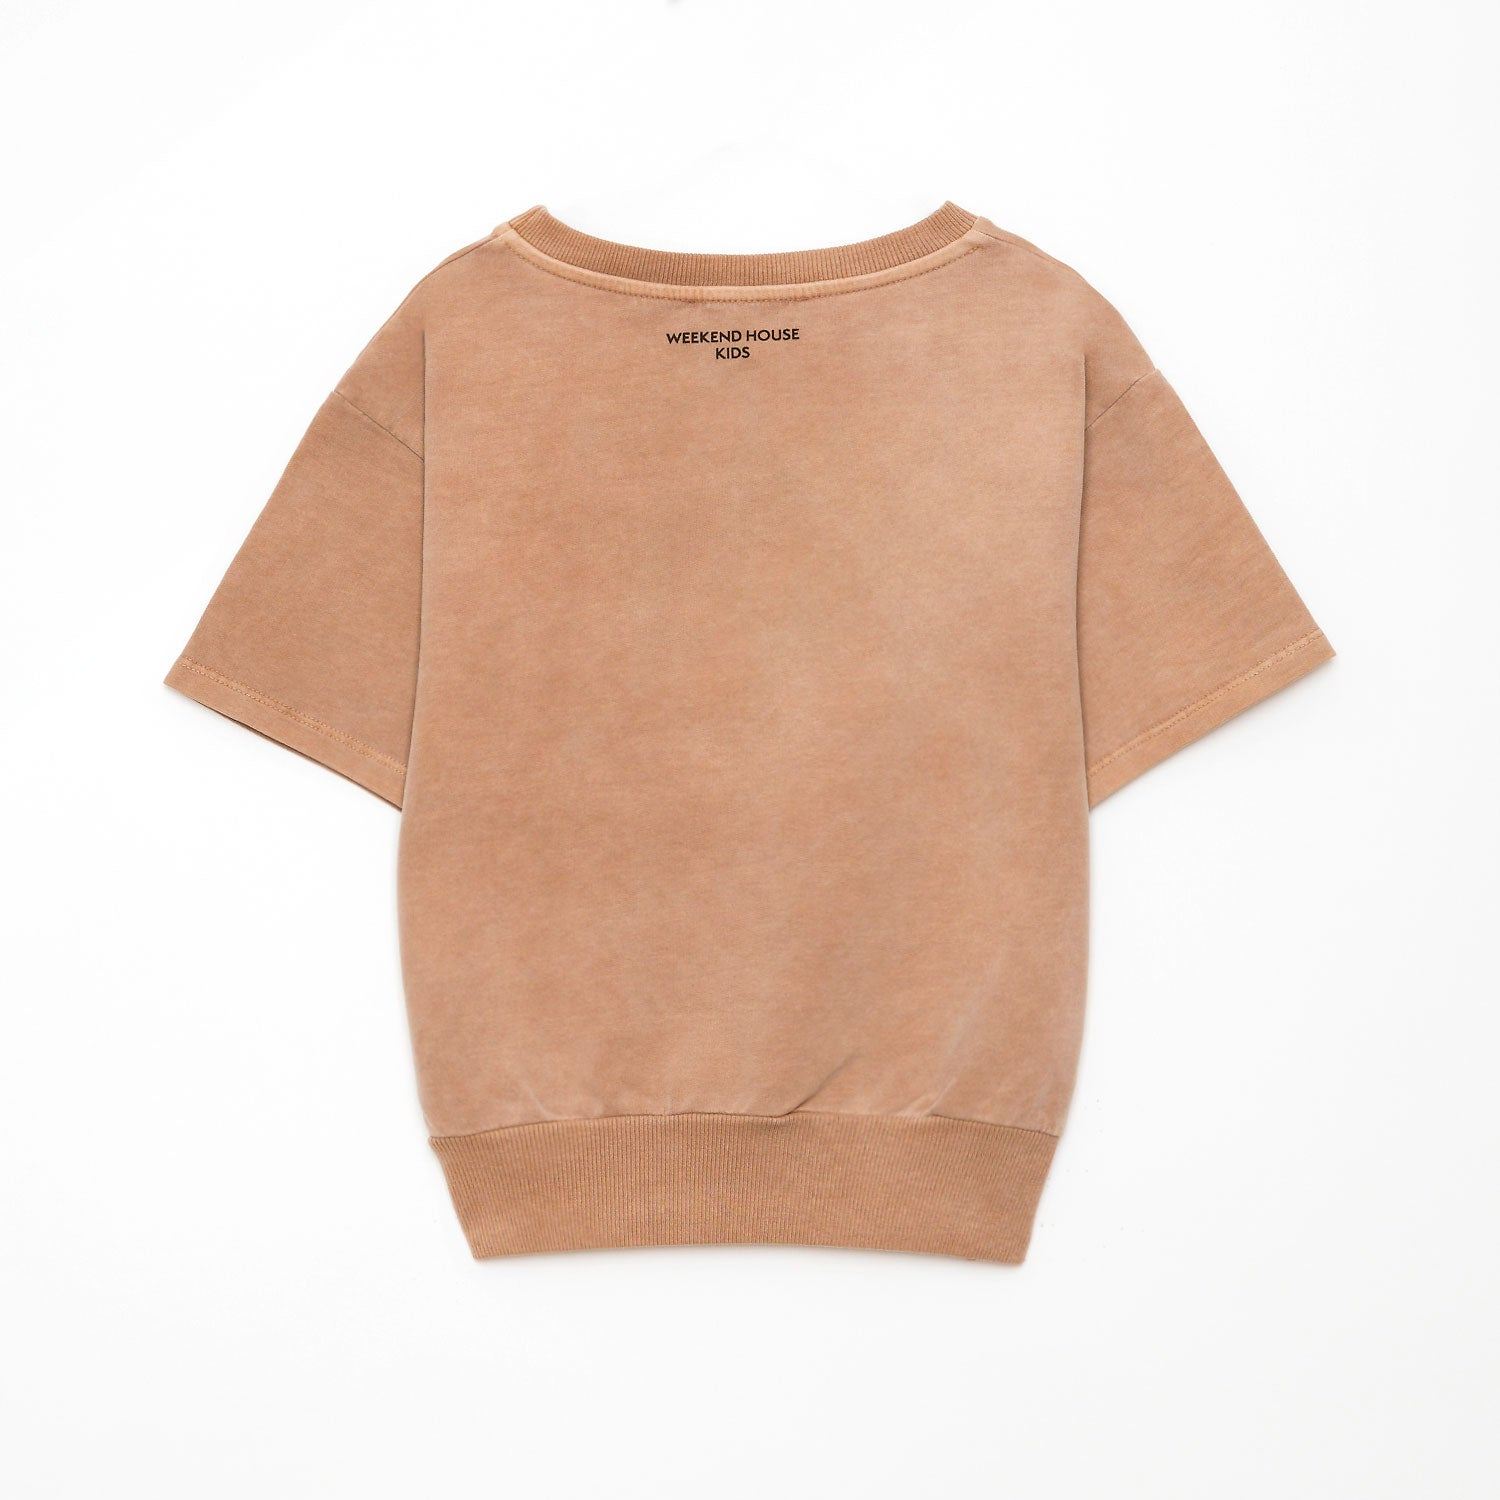 New Weekend House Kids Short Sleeve Tree Sweatshirt Camel | BIEN BIEN bienbienshop.com